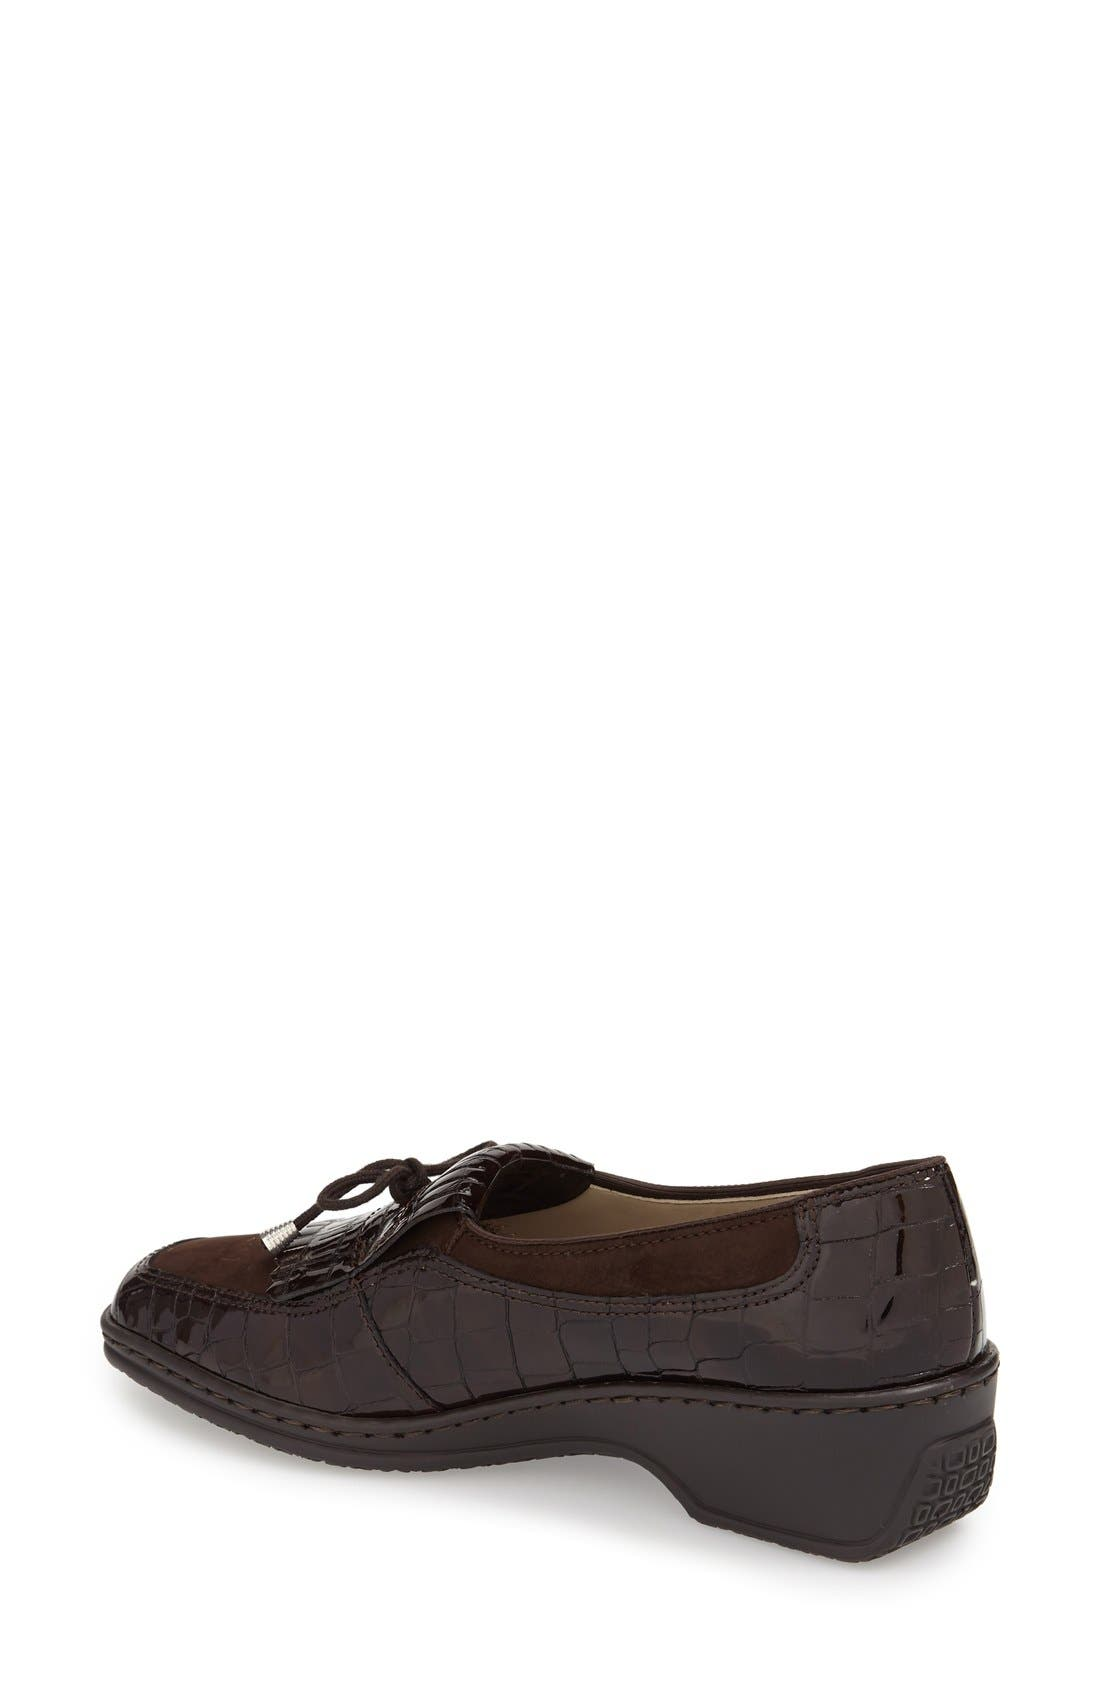 'Rachel' Loafer,                             Alternate thumbnail 3, color,                             BROWN NUBUCK LEATHER